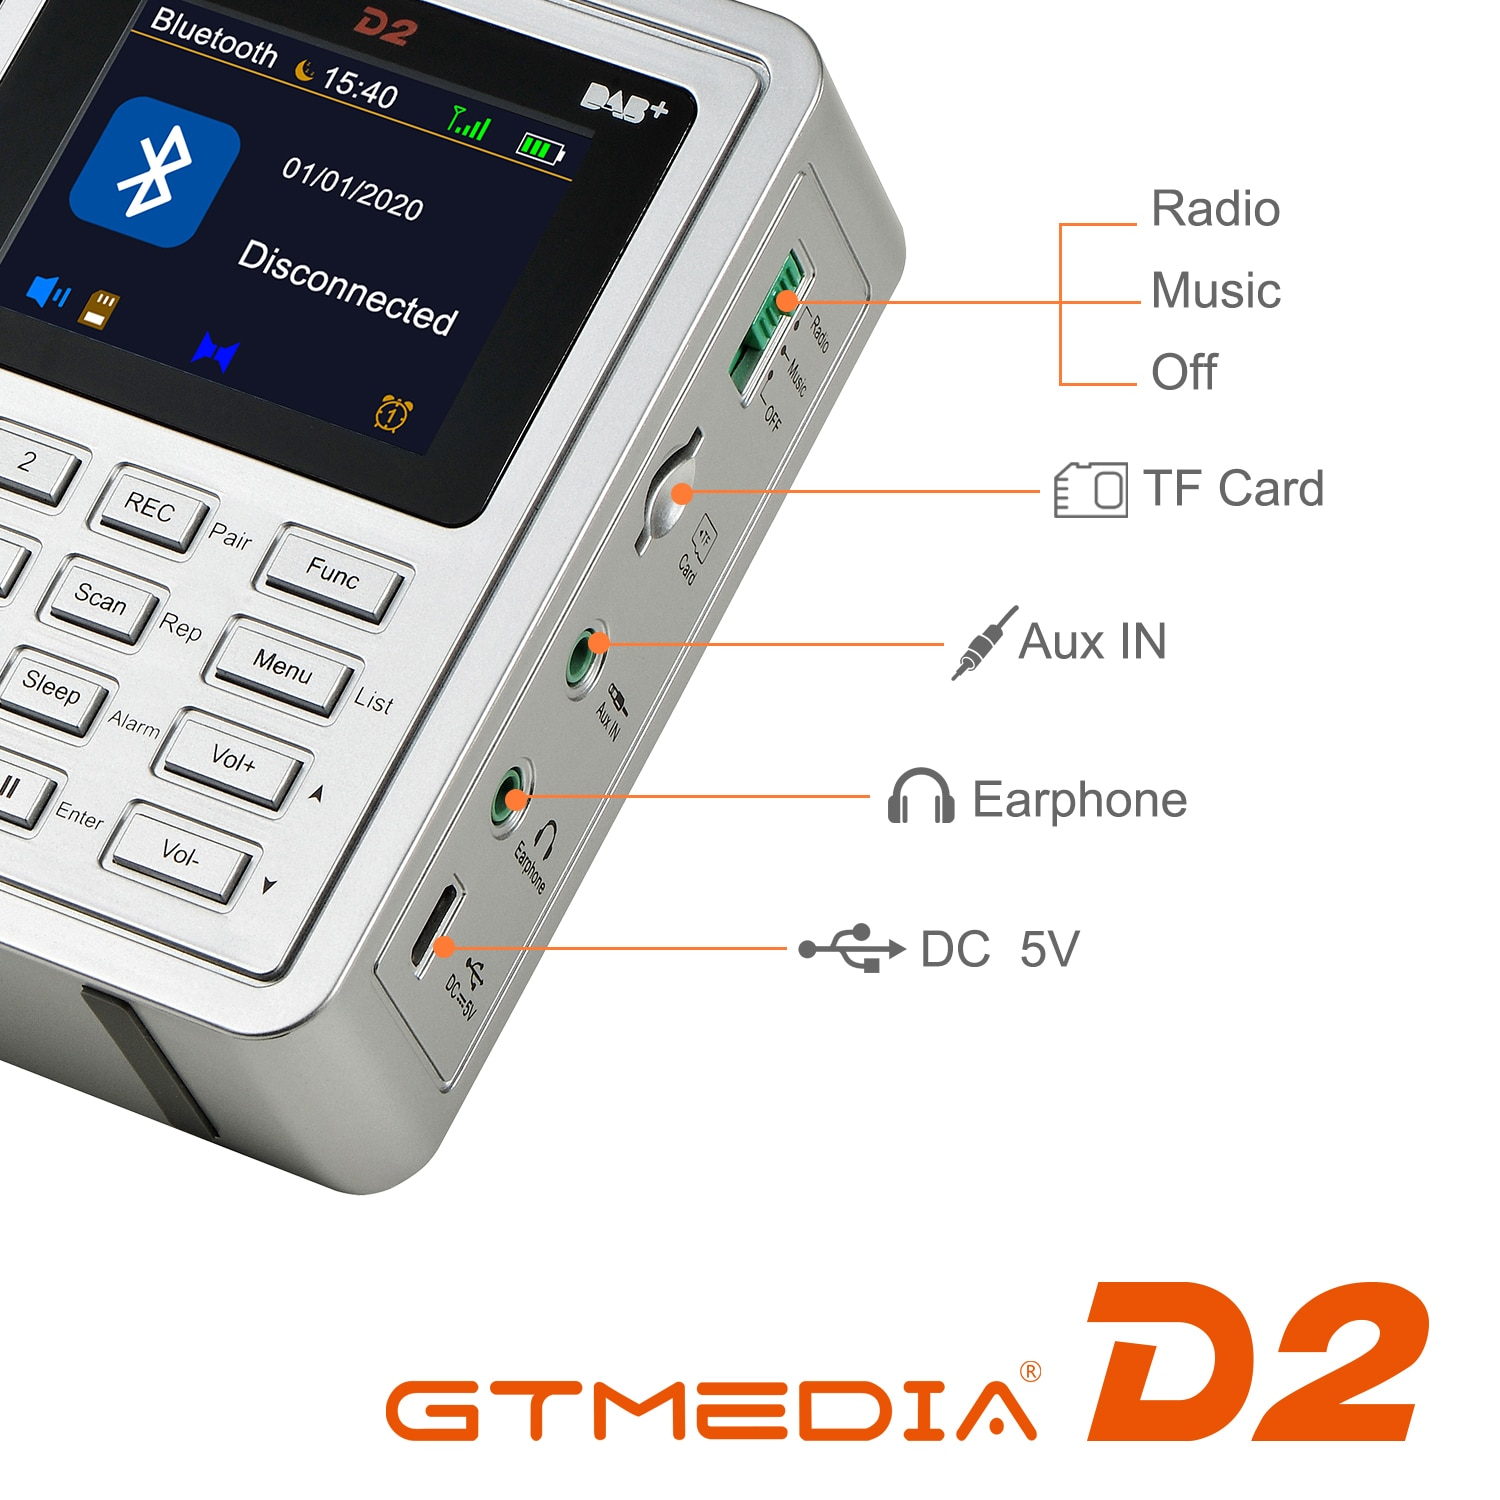 GTMEDIA D2 Portable Radio FM DAB Stereo / RDS Multi Band Radio Speakers with 2.4 Inch LCD Display Alarm Support Micro SD TF Card enlarge